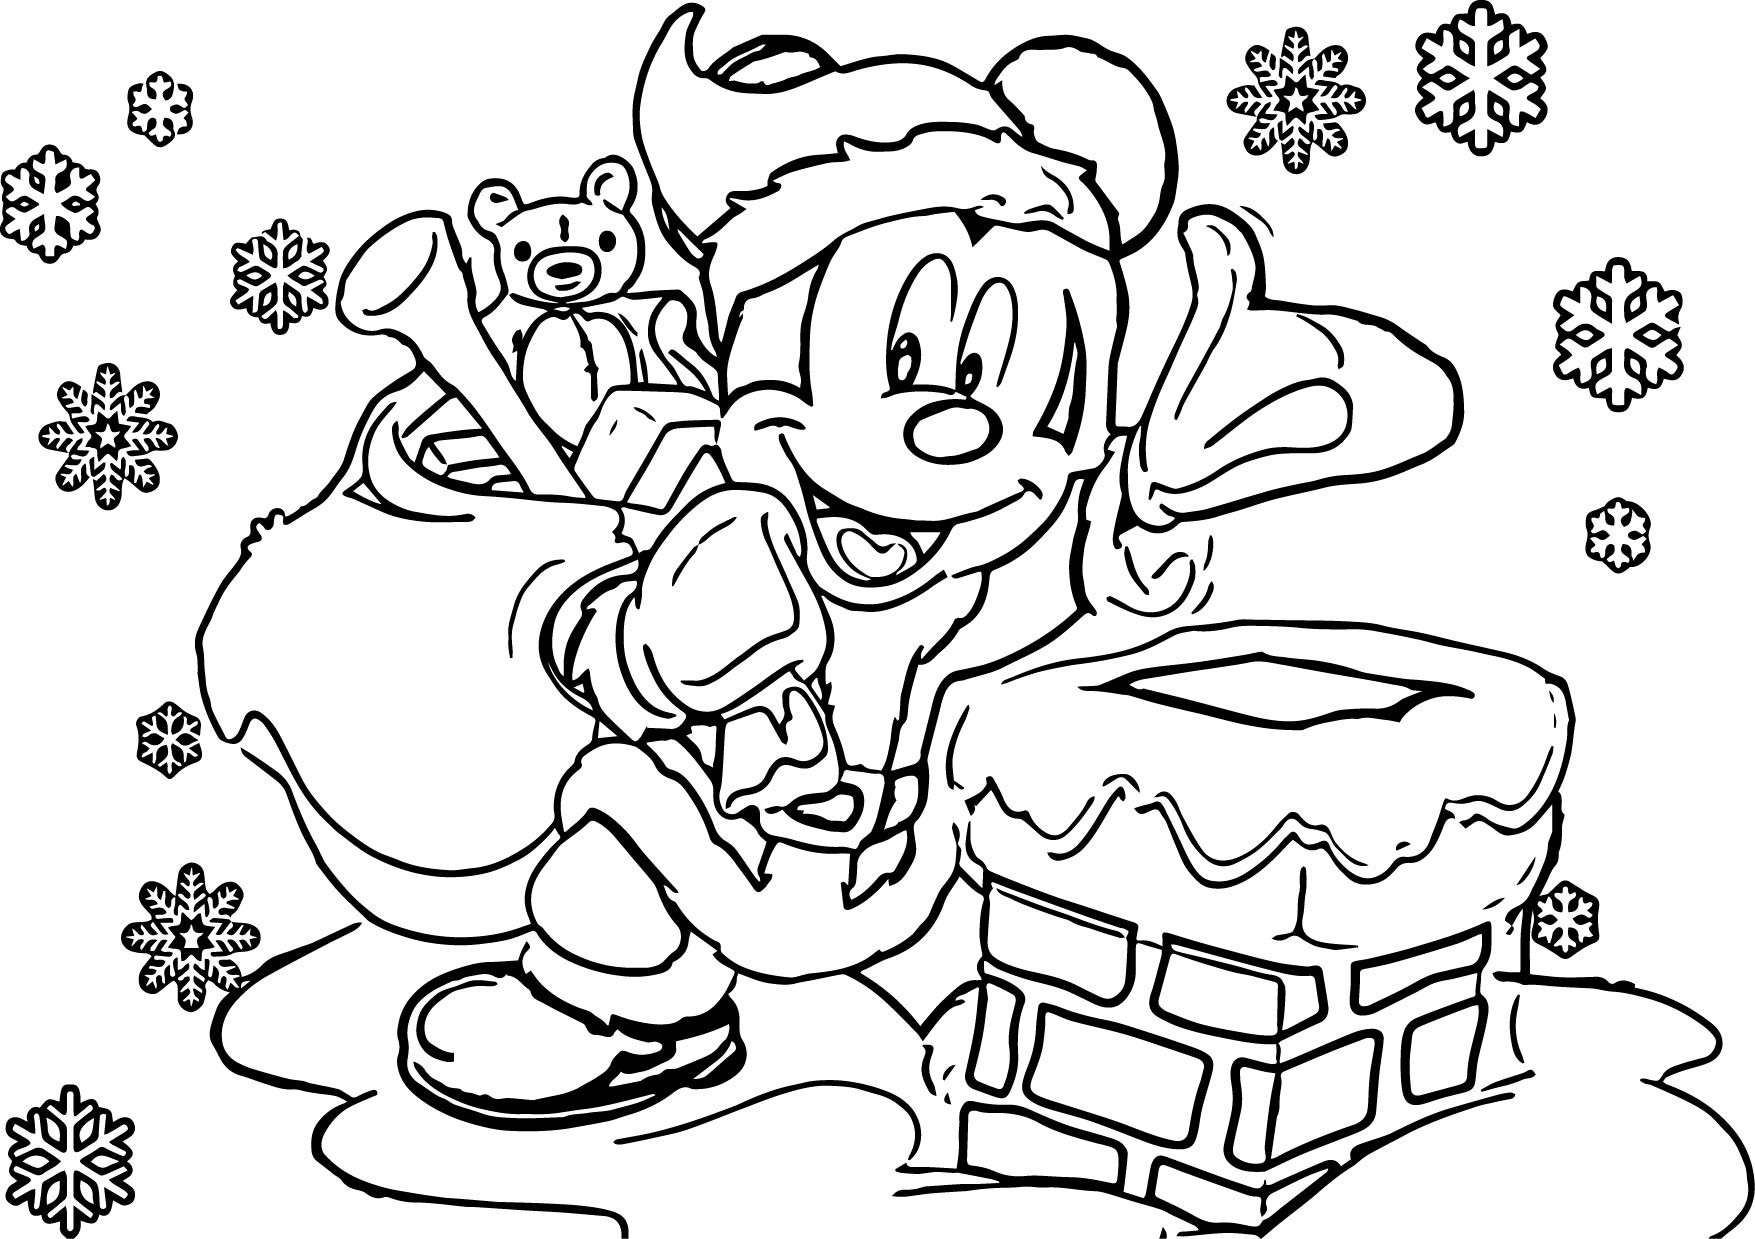 Christmas Coloring Pages Gallery 7n - Save it to your computer